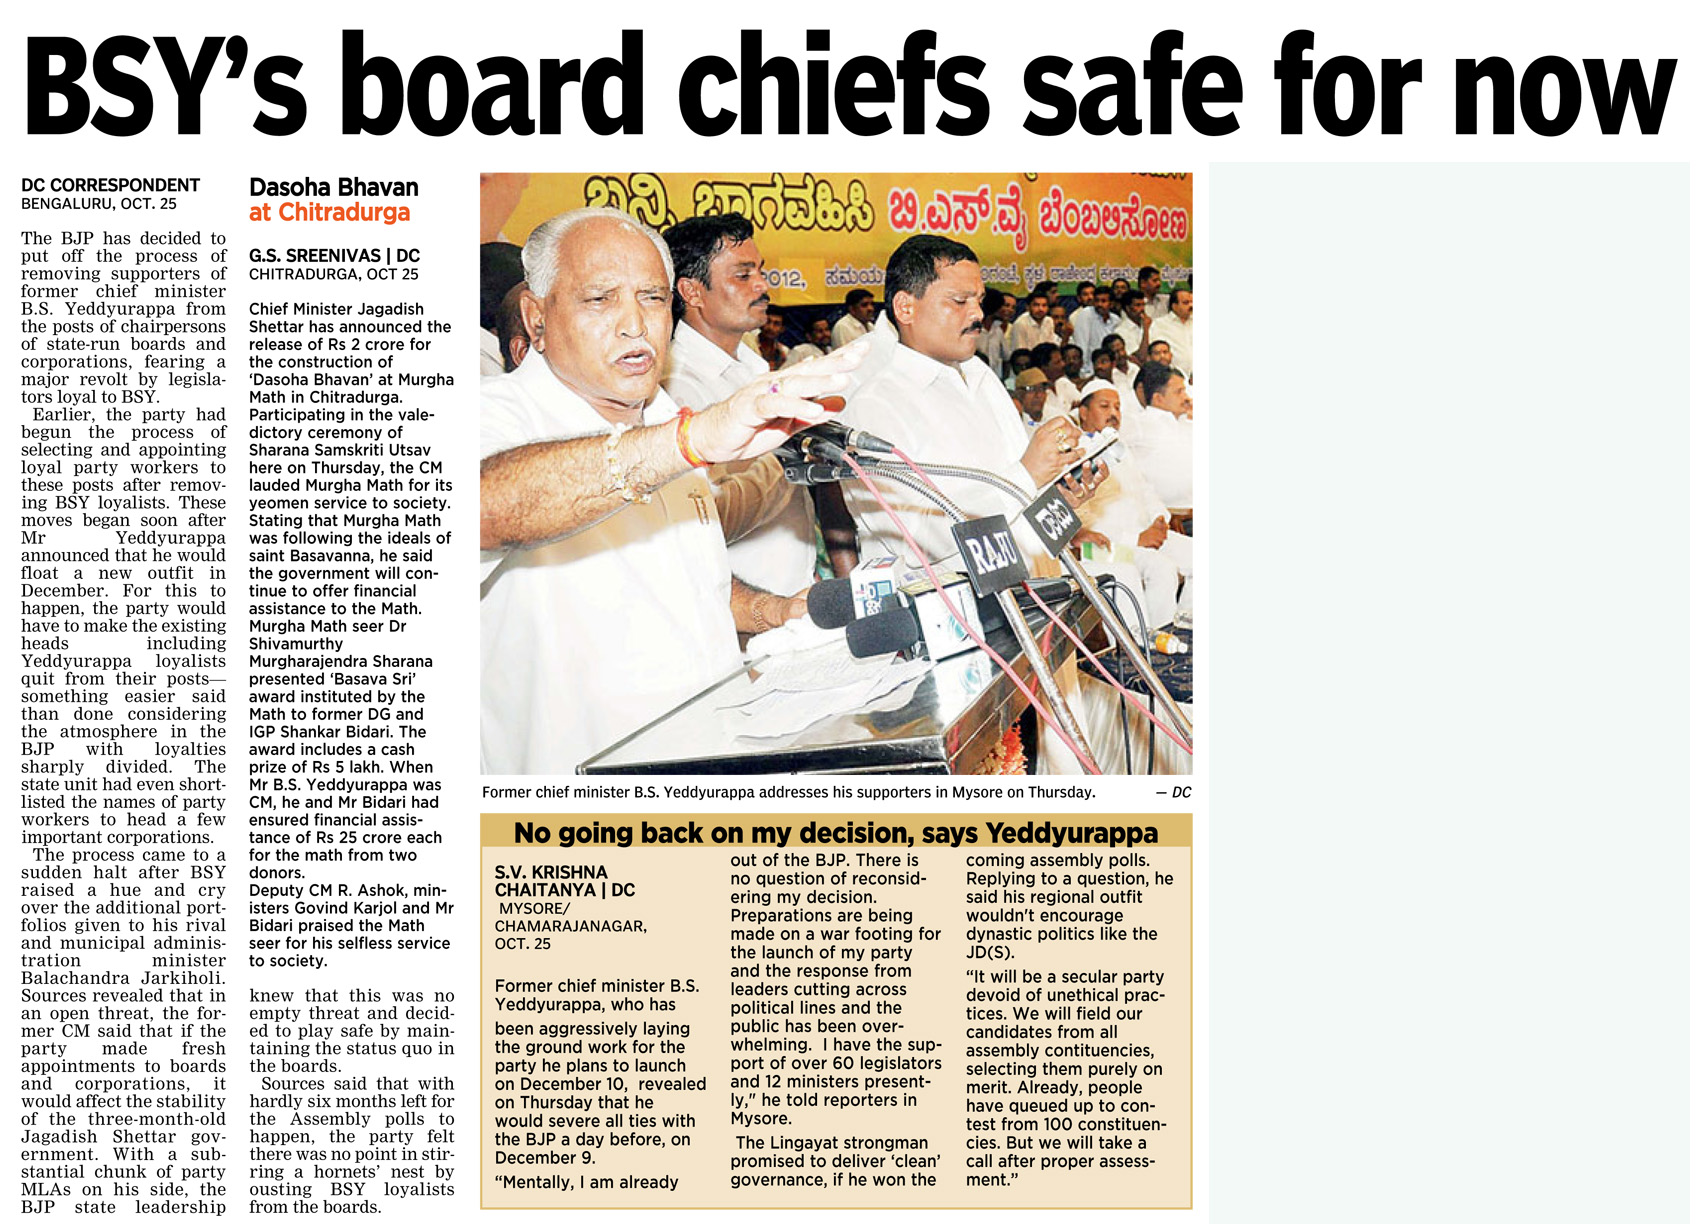 BSY's board chiefs safe for now